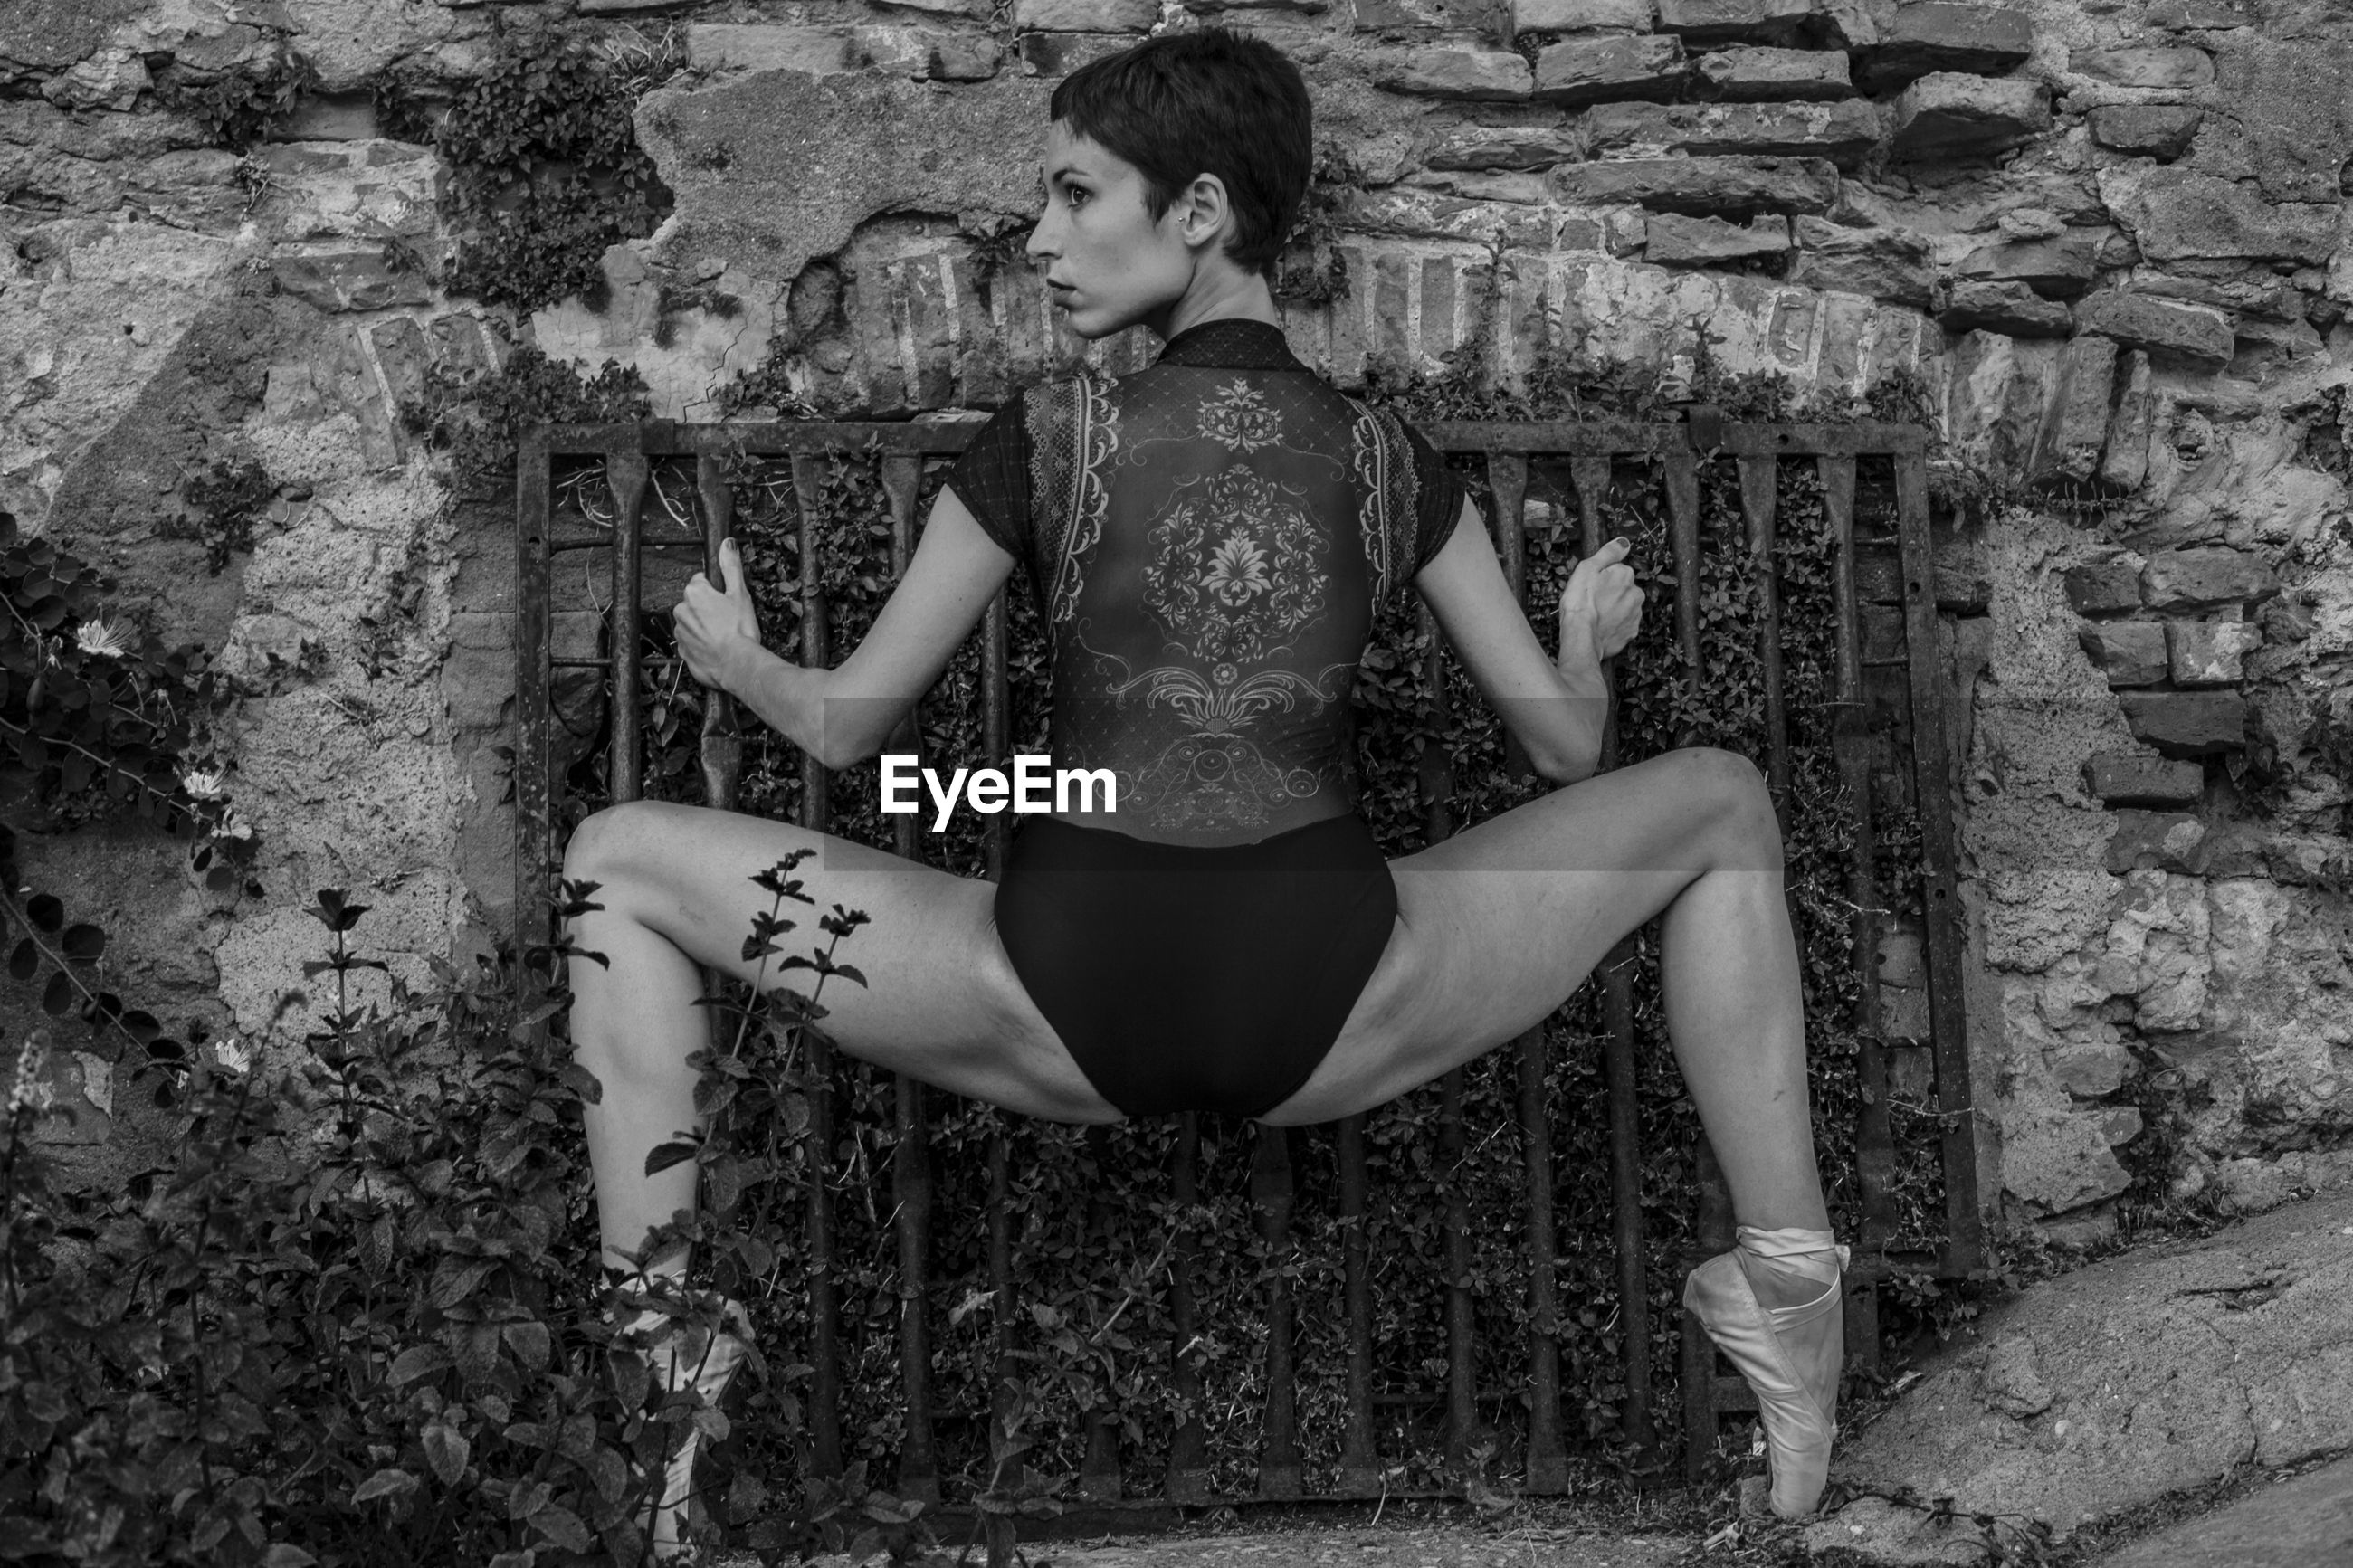 Rear view of ballerina with legs apart crouching while holding gate